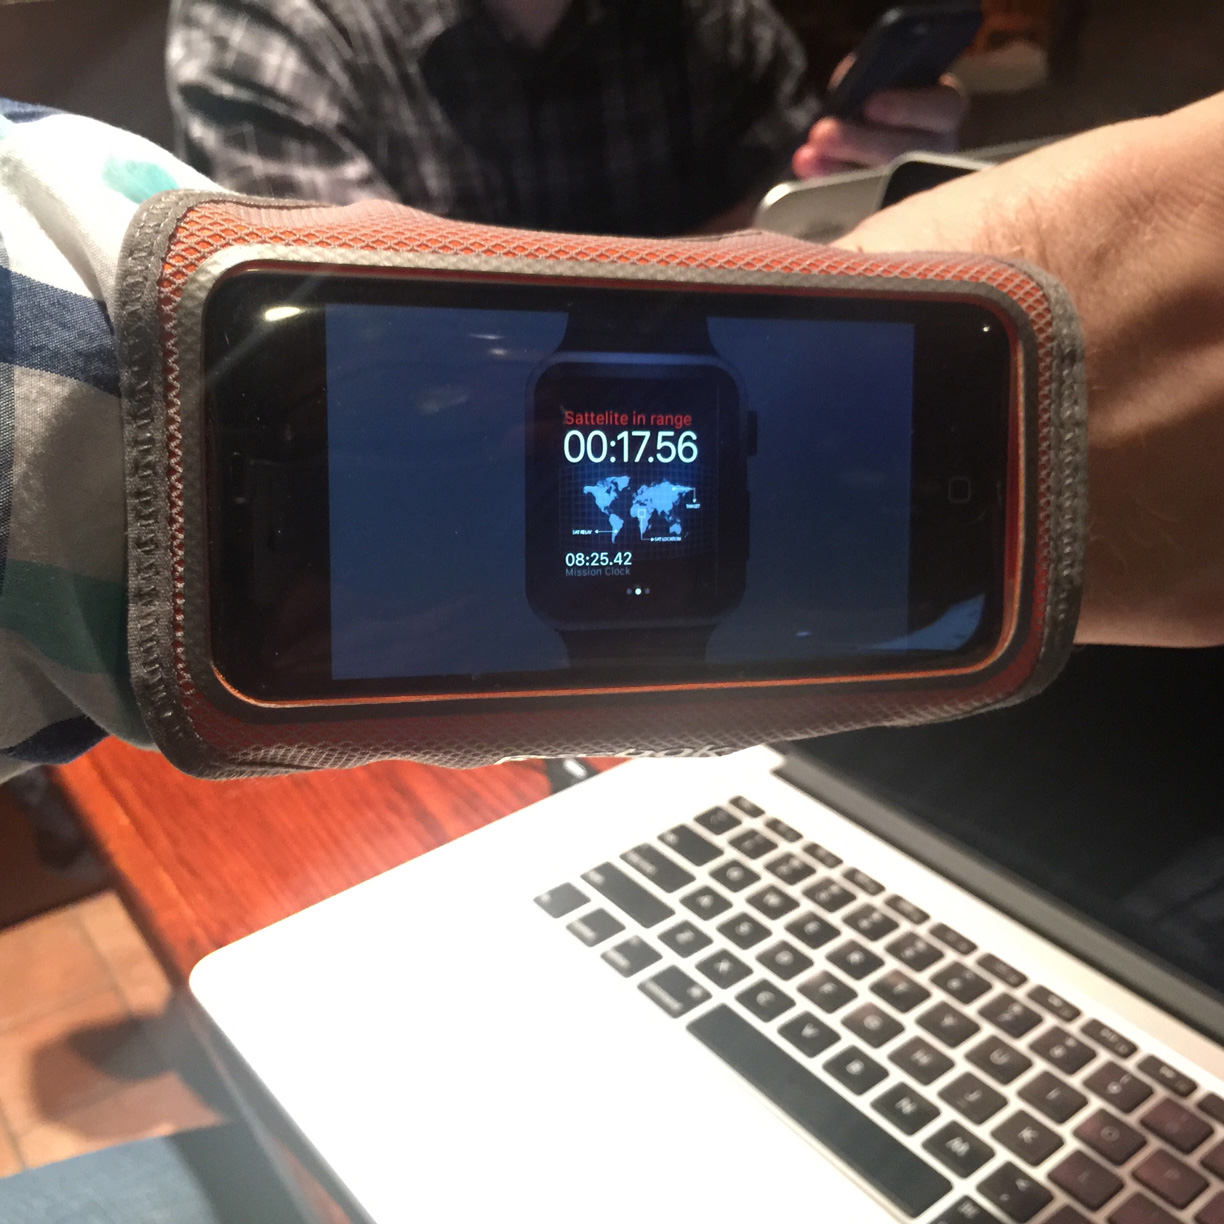 photo of the iPhone running cuff with Briefscase running